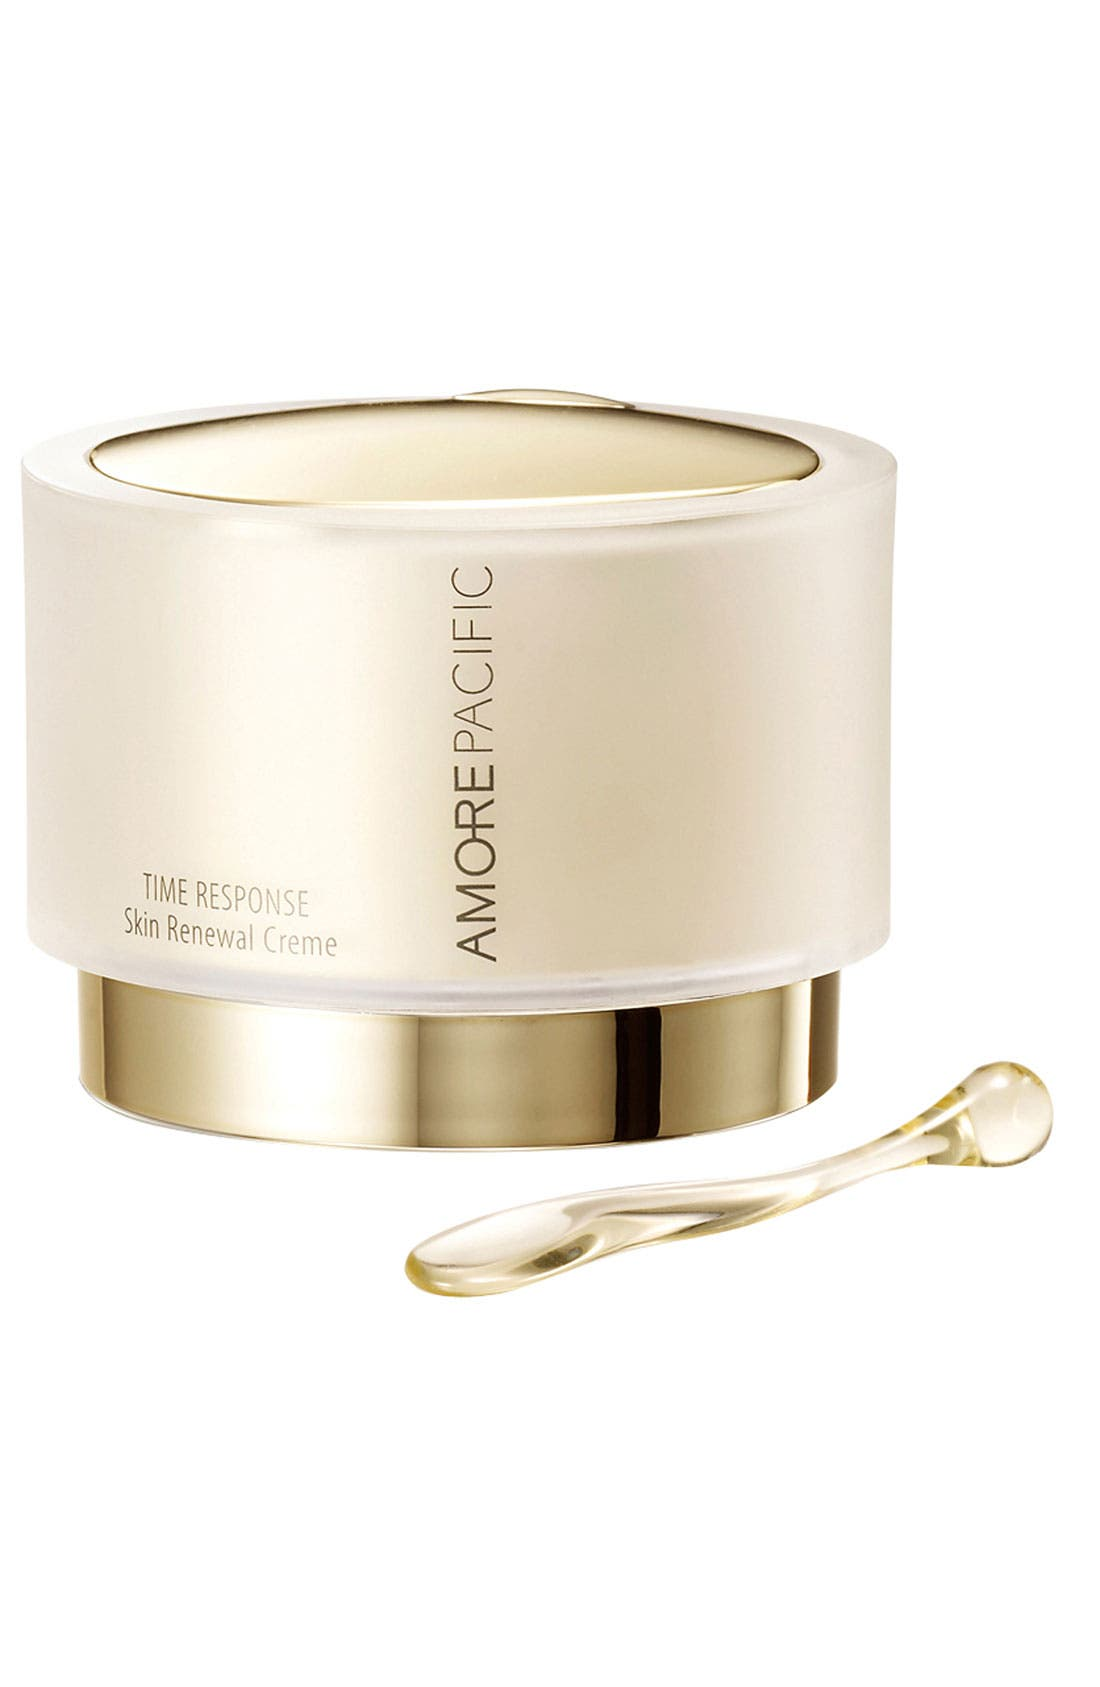 AMOREPACIFIC 'Time Response' Skin Renewal Crème